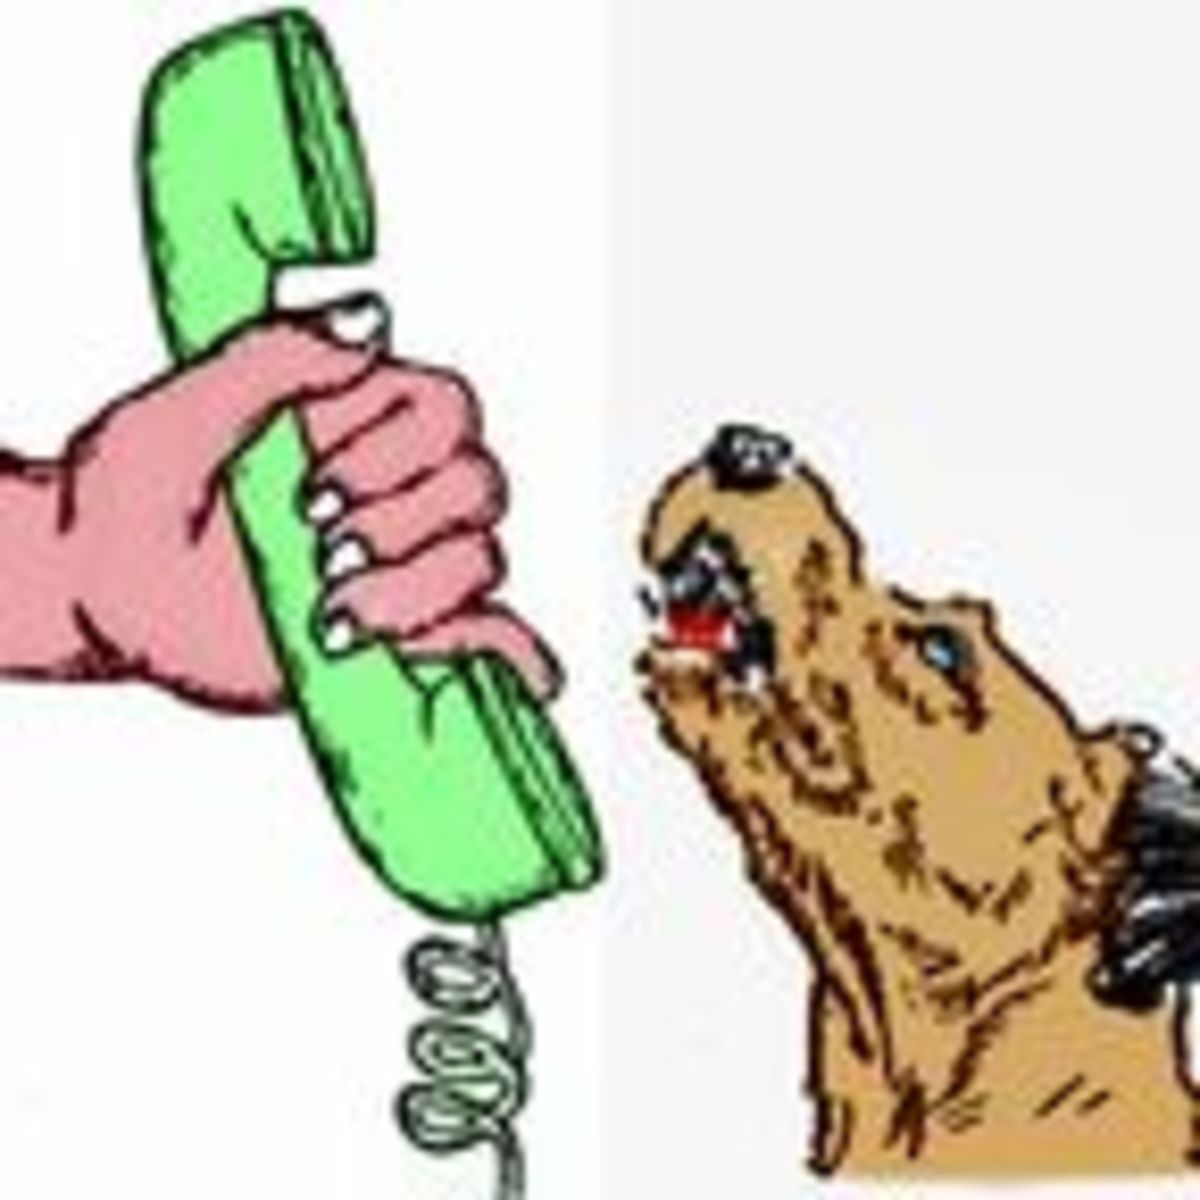 What Are Dogs Trying to Say When They Bark? | Psychology Today